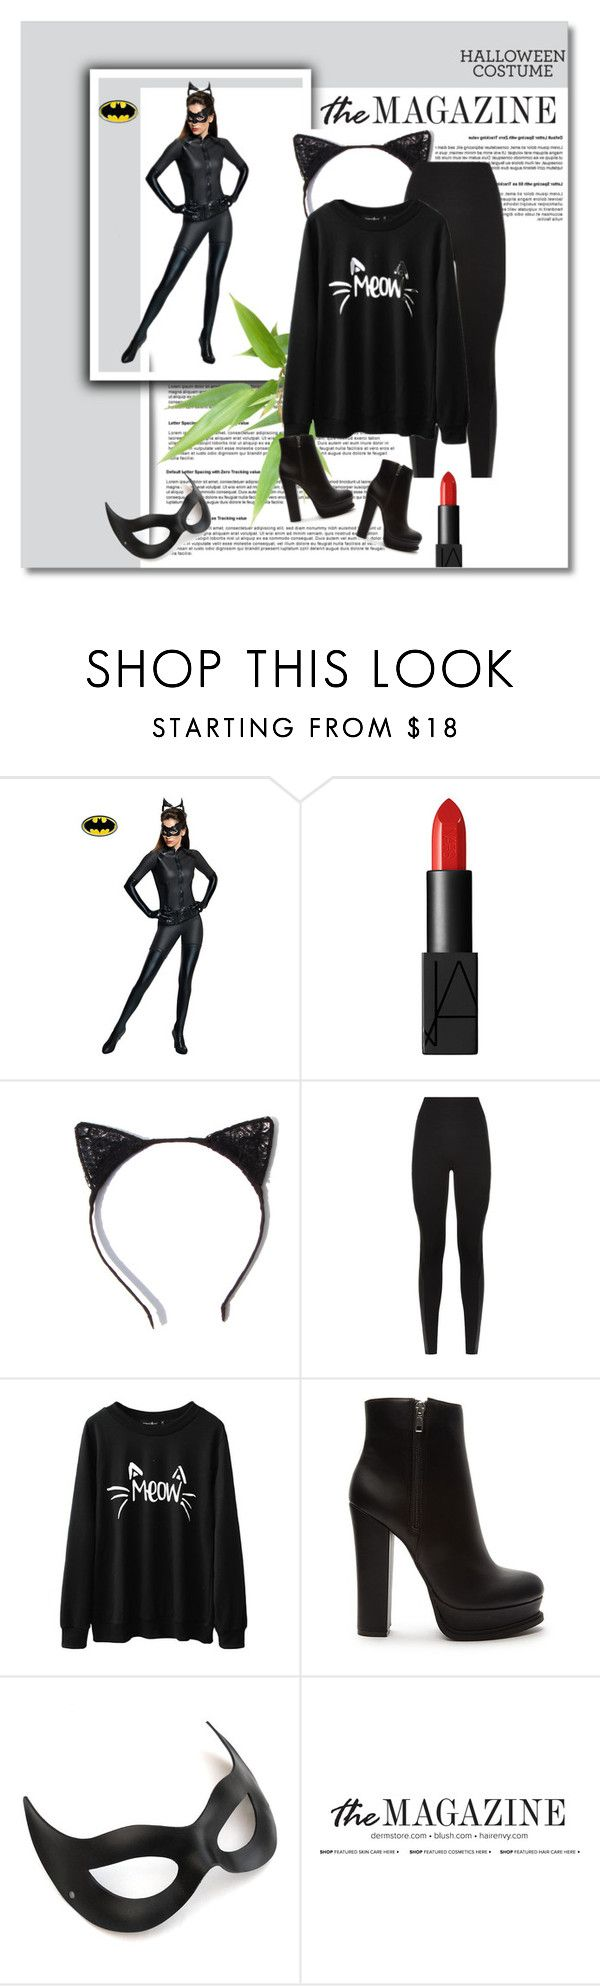 """""""DIY Cat Costume"""" by michufrid ❤ liked on Polyvore featuring Rubie's Costume Co., NARS Cosmetics, SPANX, Forever 21 and halloweencostume"""